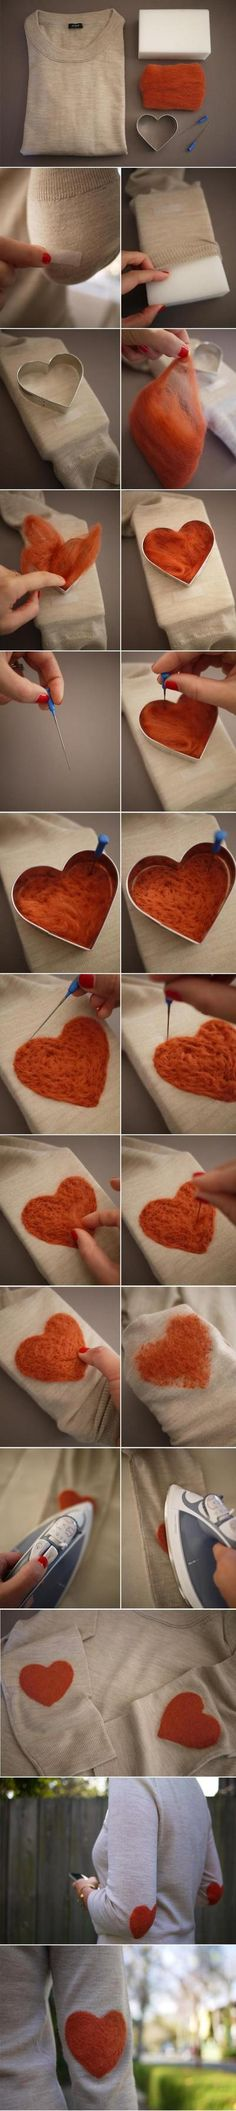 How-to Heart Elbow patches <3